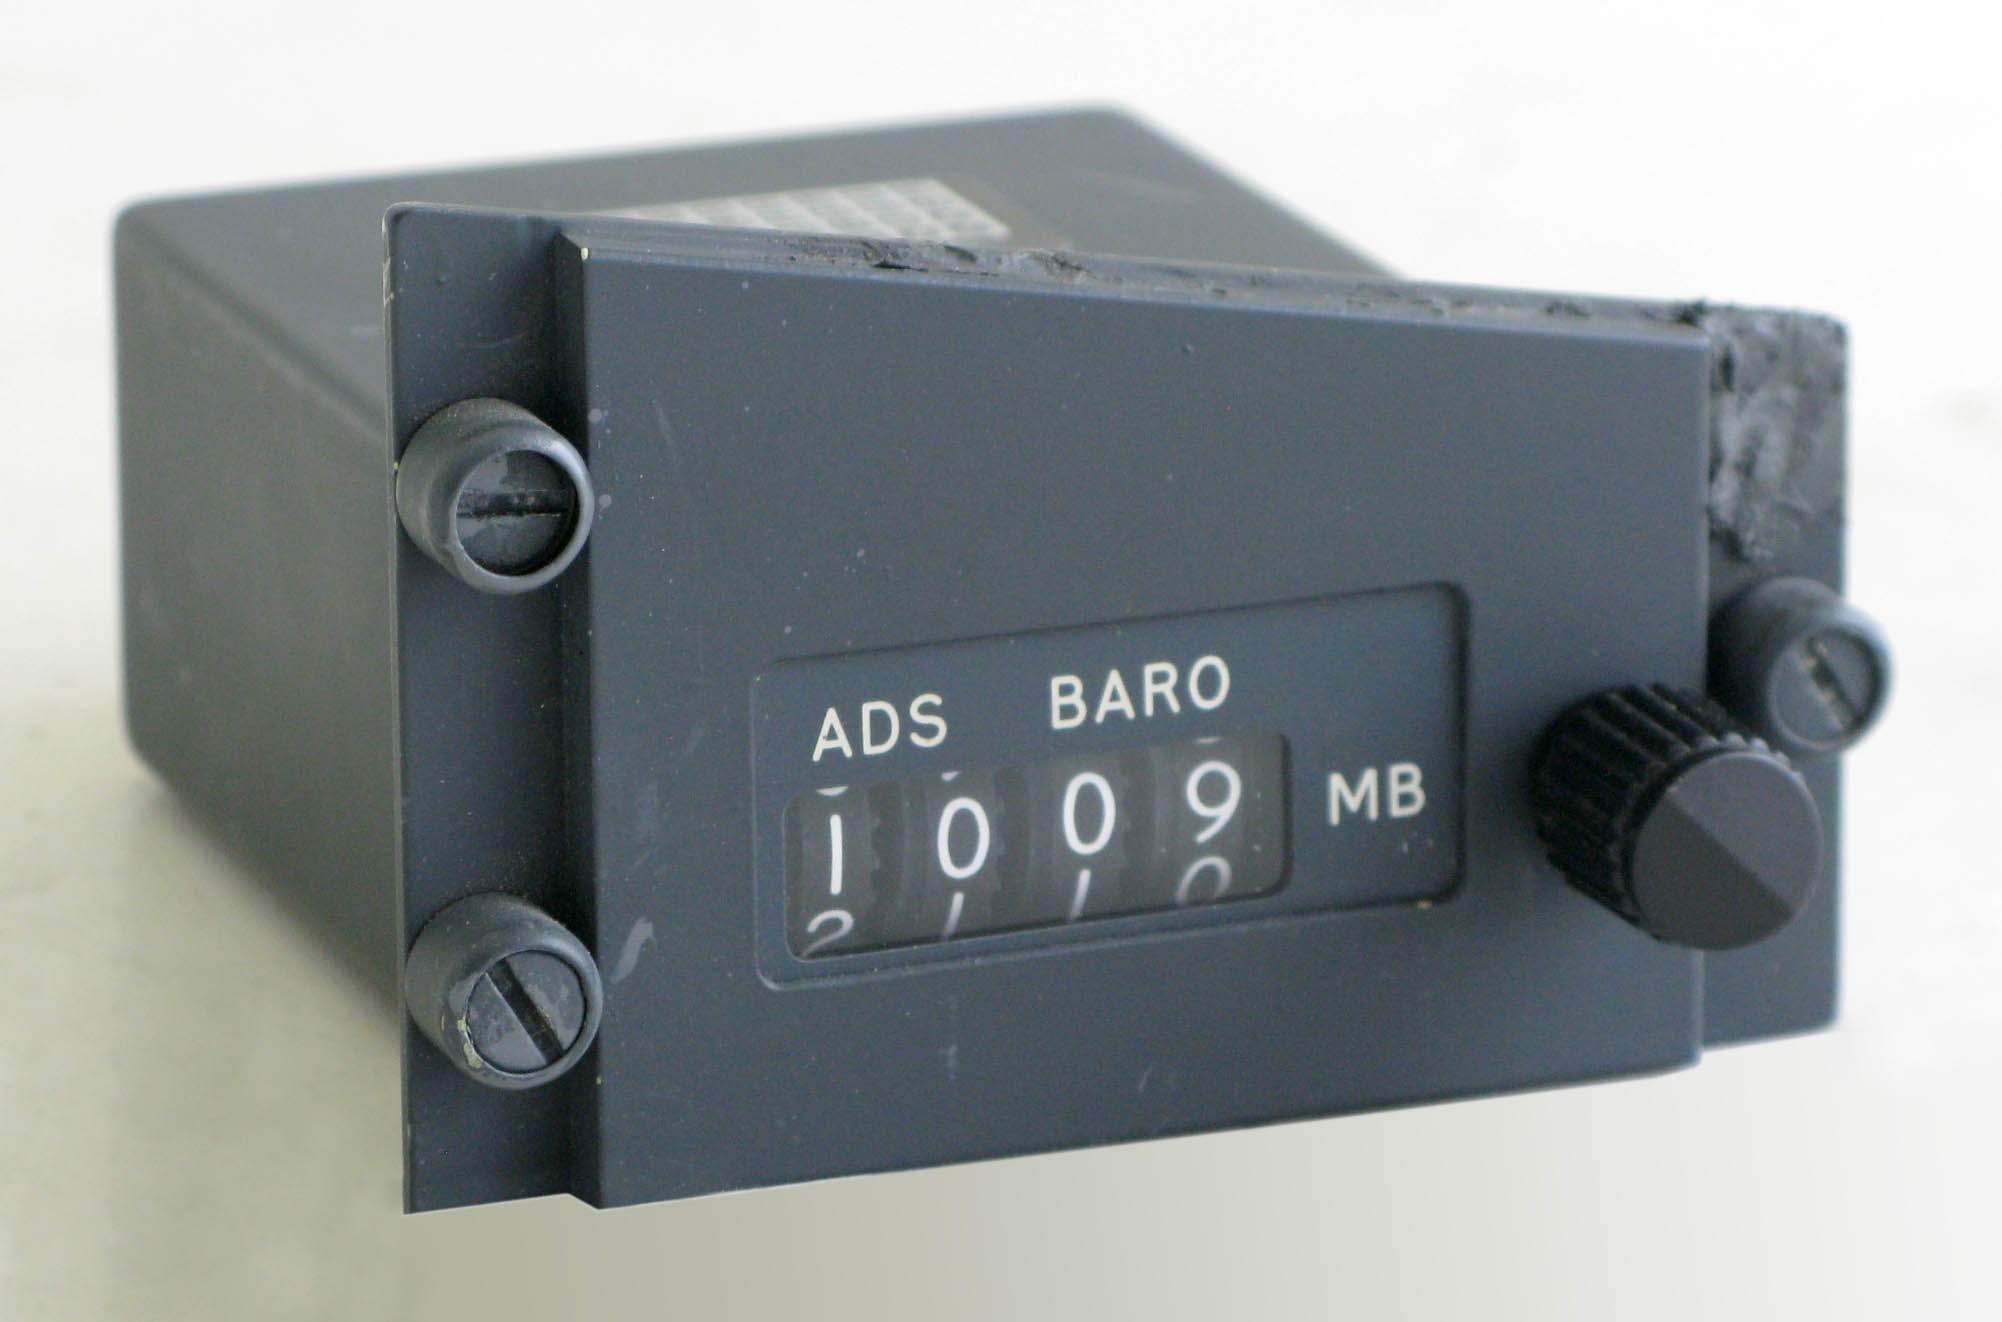 ADS Barometric Pressure Entry Unit